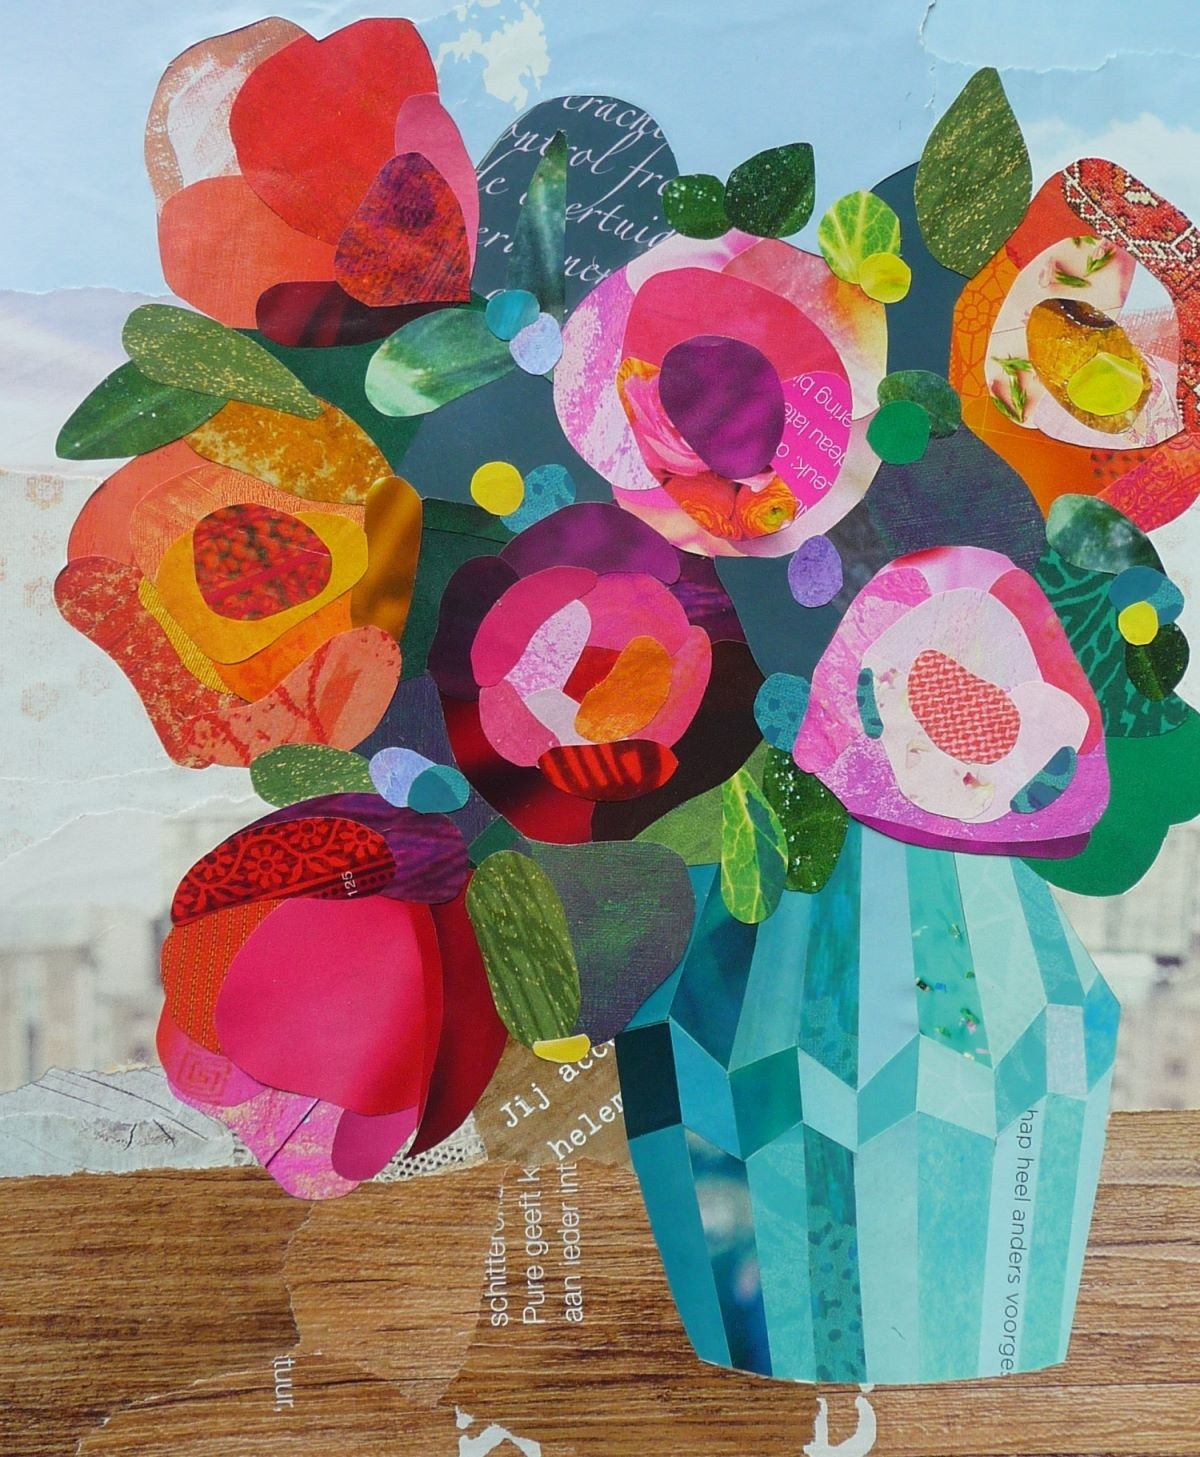 Bloemen collage